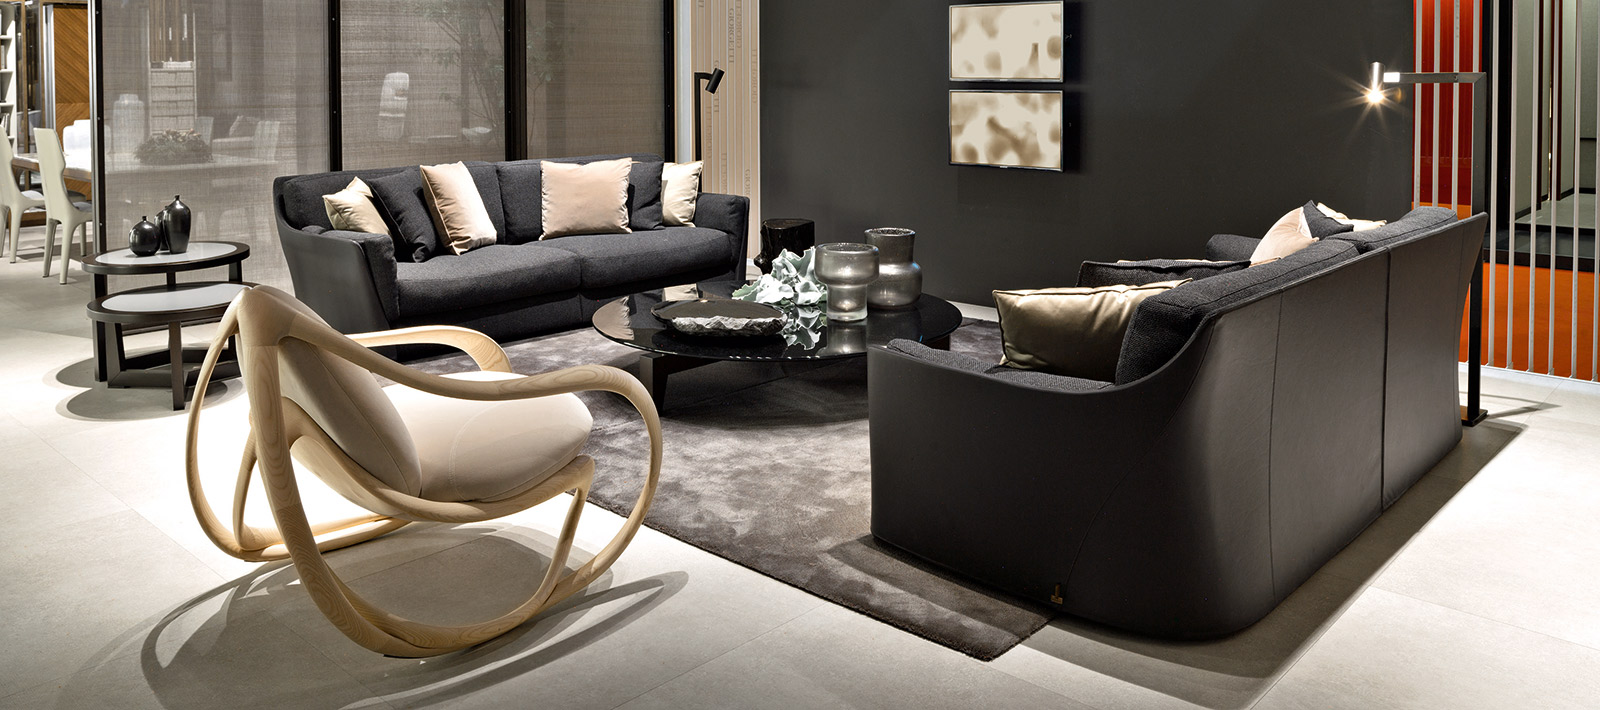 Luxury armchairs italiansoul for Giorgetti poltrone